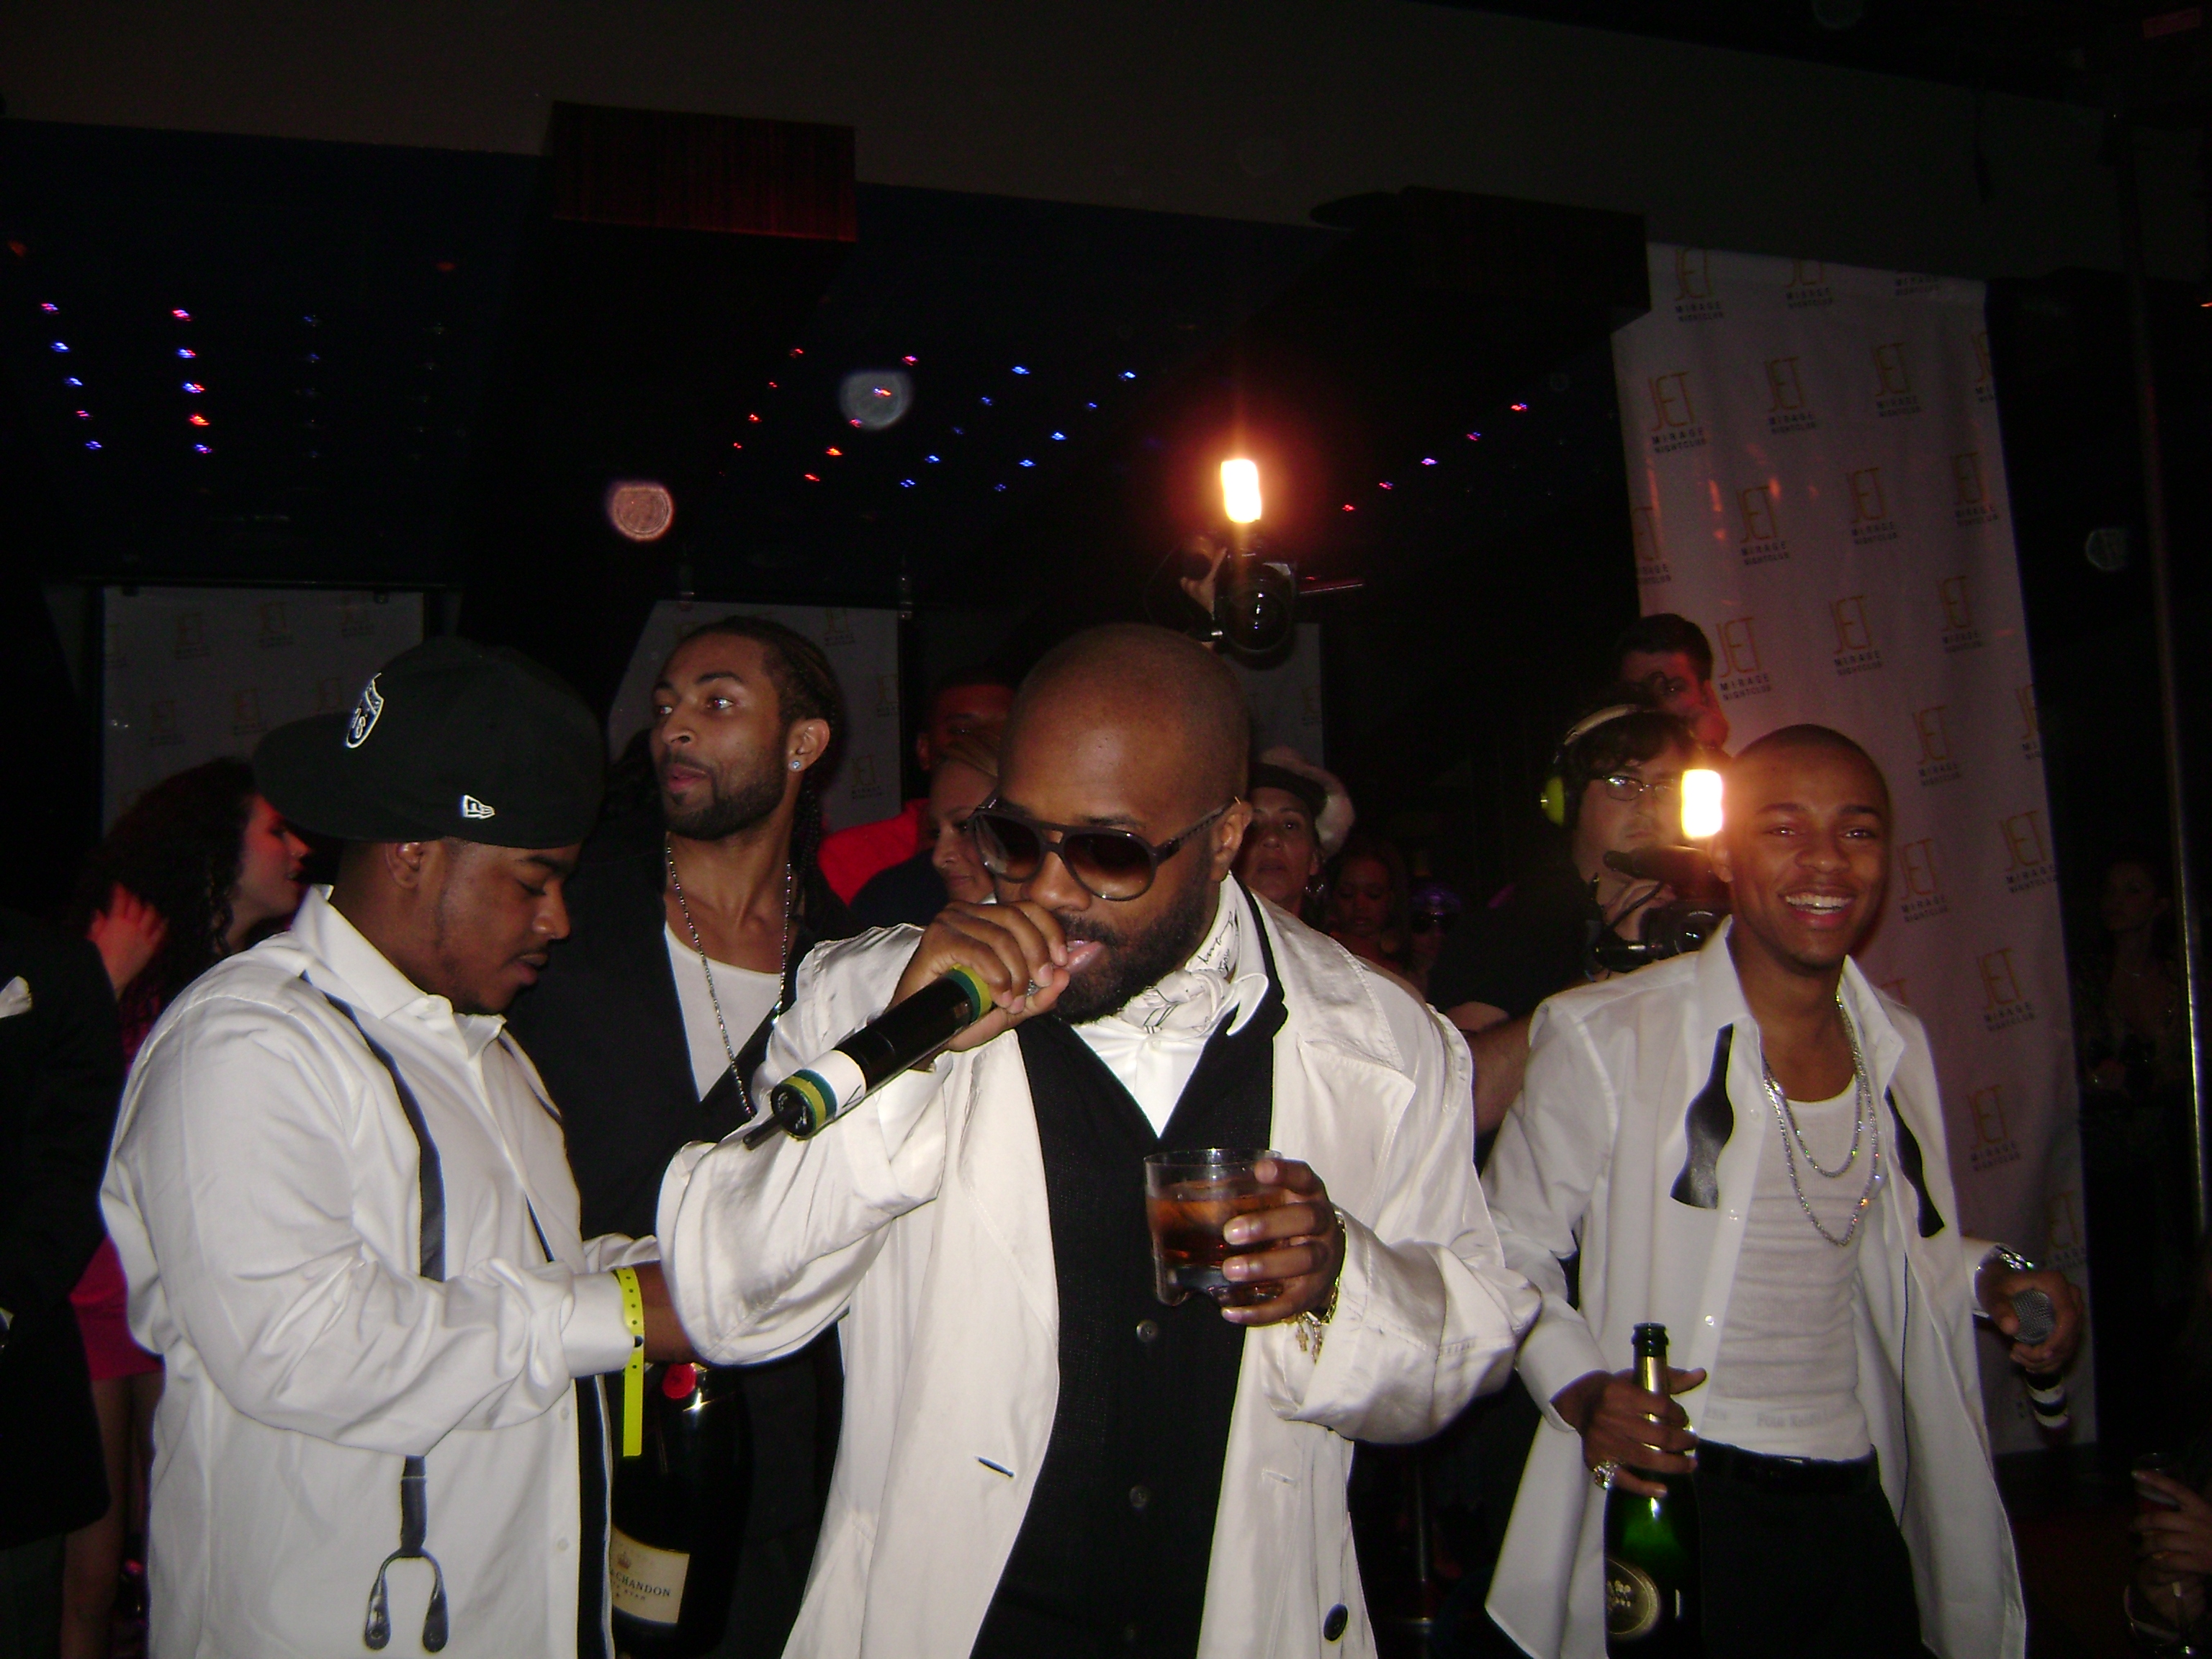 DJ Quick Djing In Las Vegas For Bow Wow's 21st B.D. With JD, Snoop, & Swiss Beats Pic 3